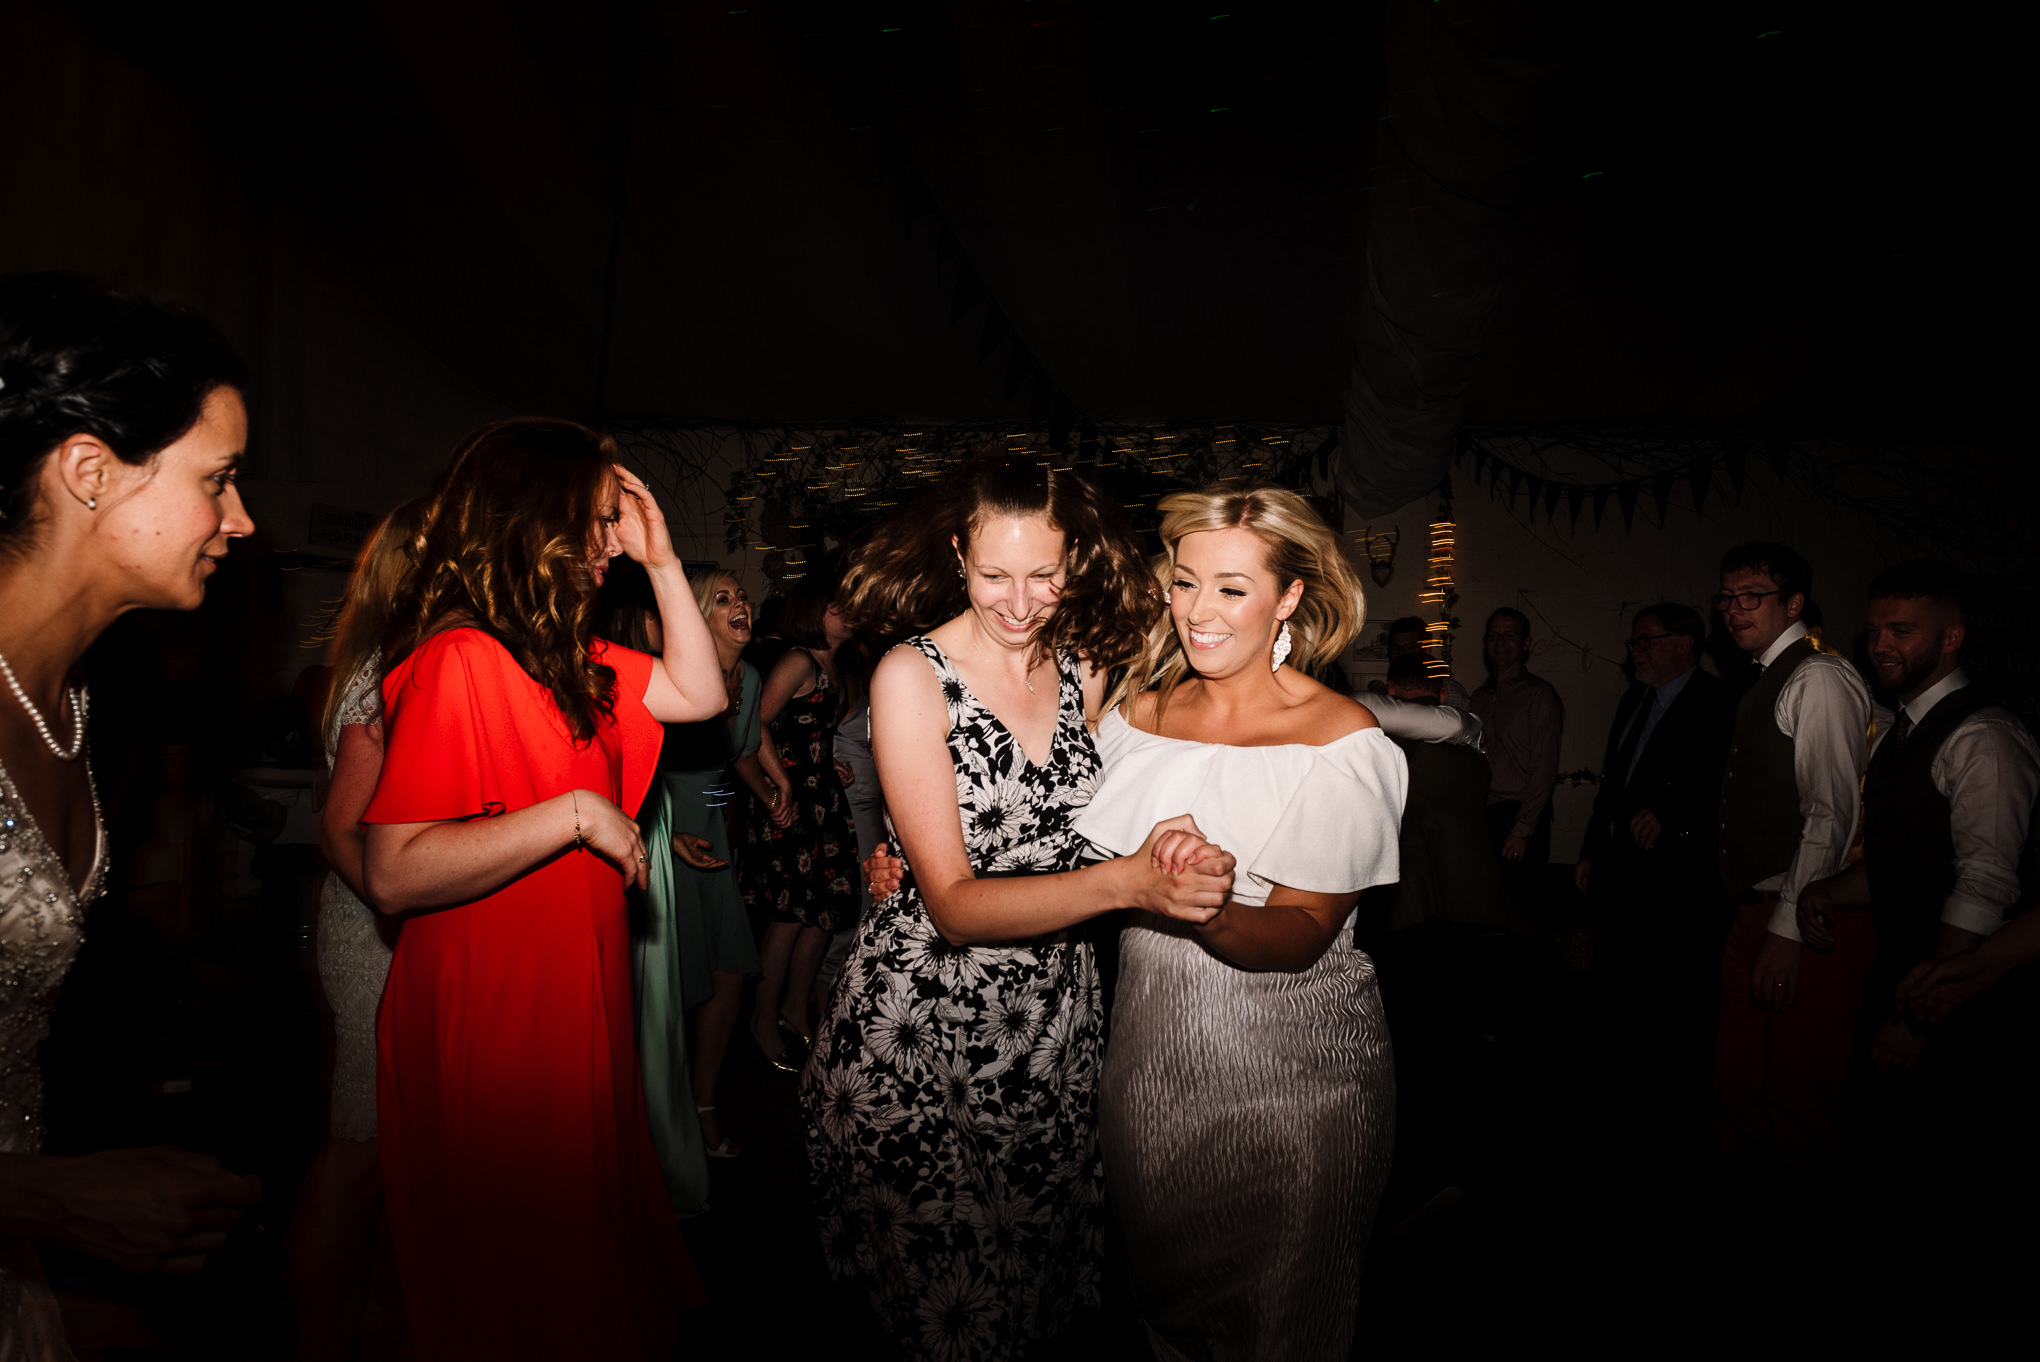 Ceilidh dancing. Natural wedding photography